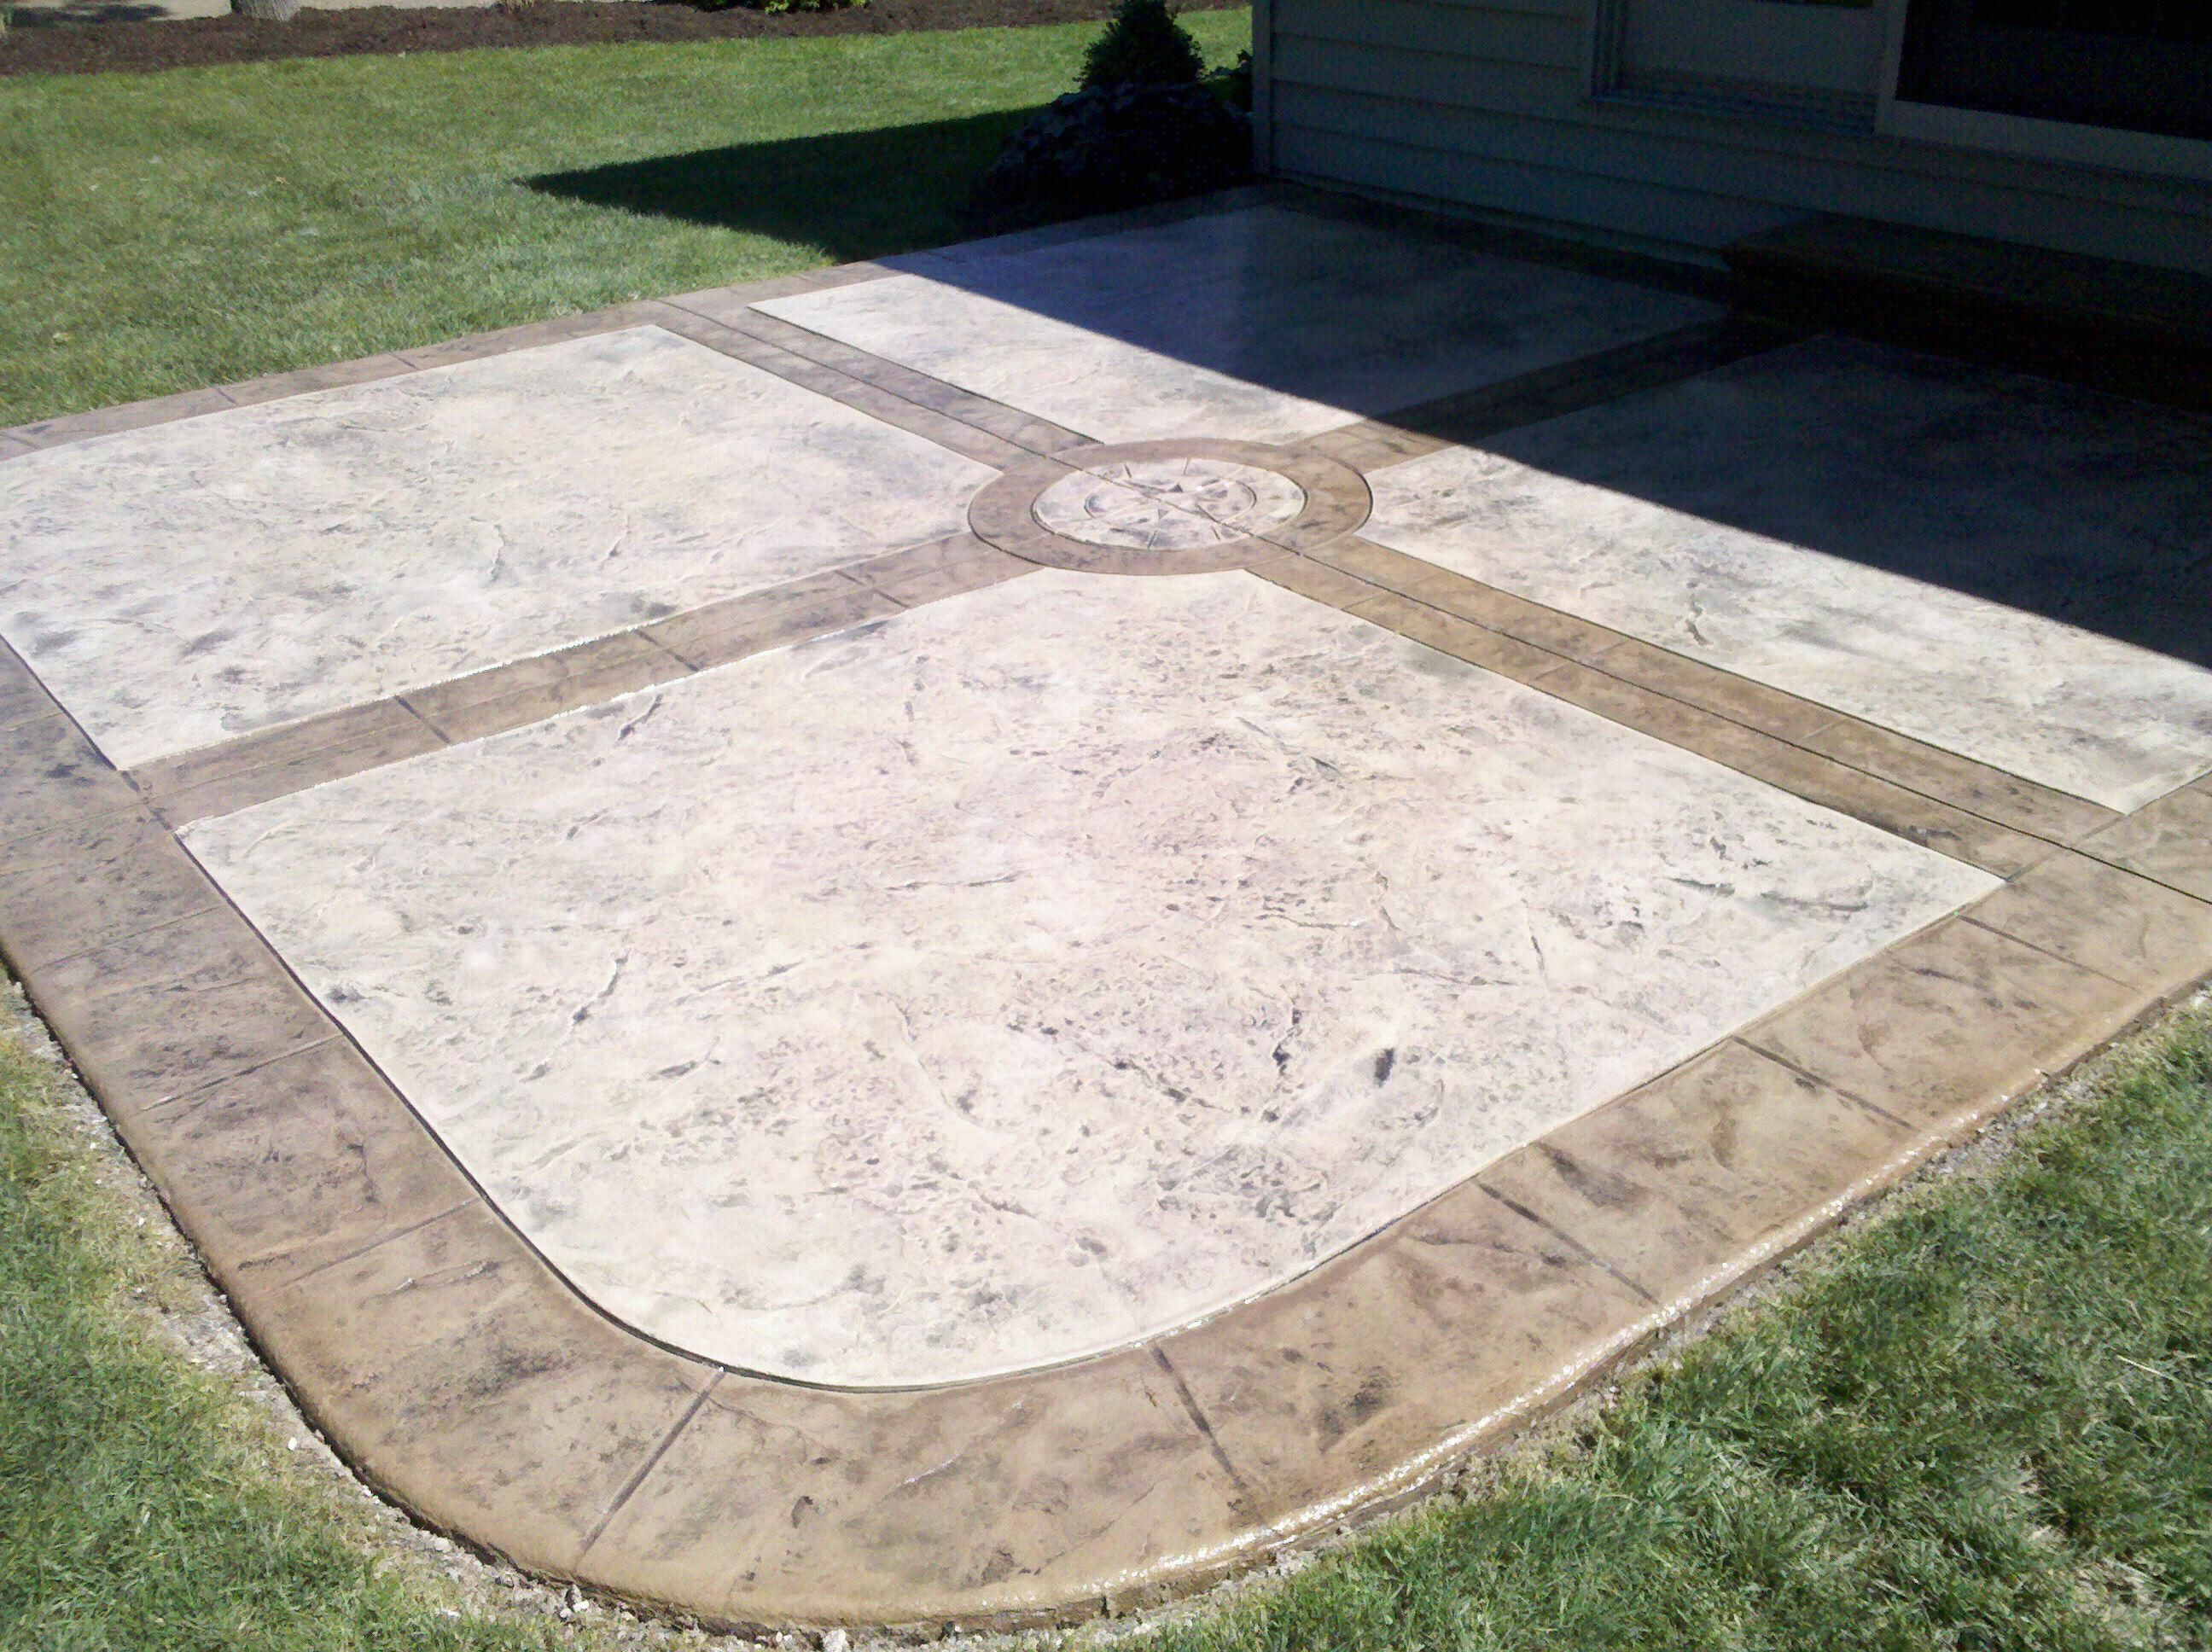 17 Best images about Stamped Concrete on Pinterest | Fire pits, Wood stamped  concrete and Stamped concrete